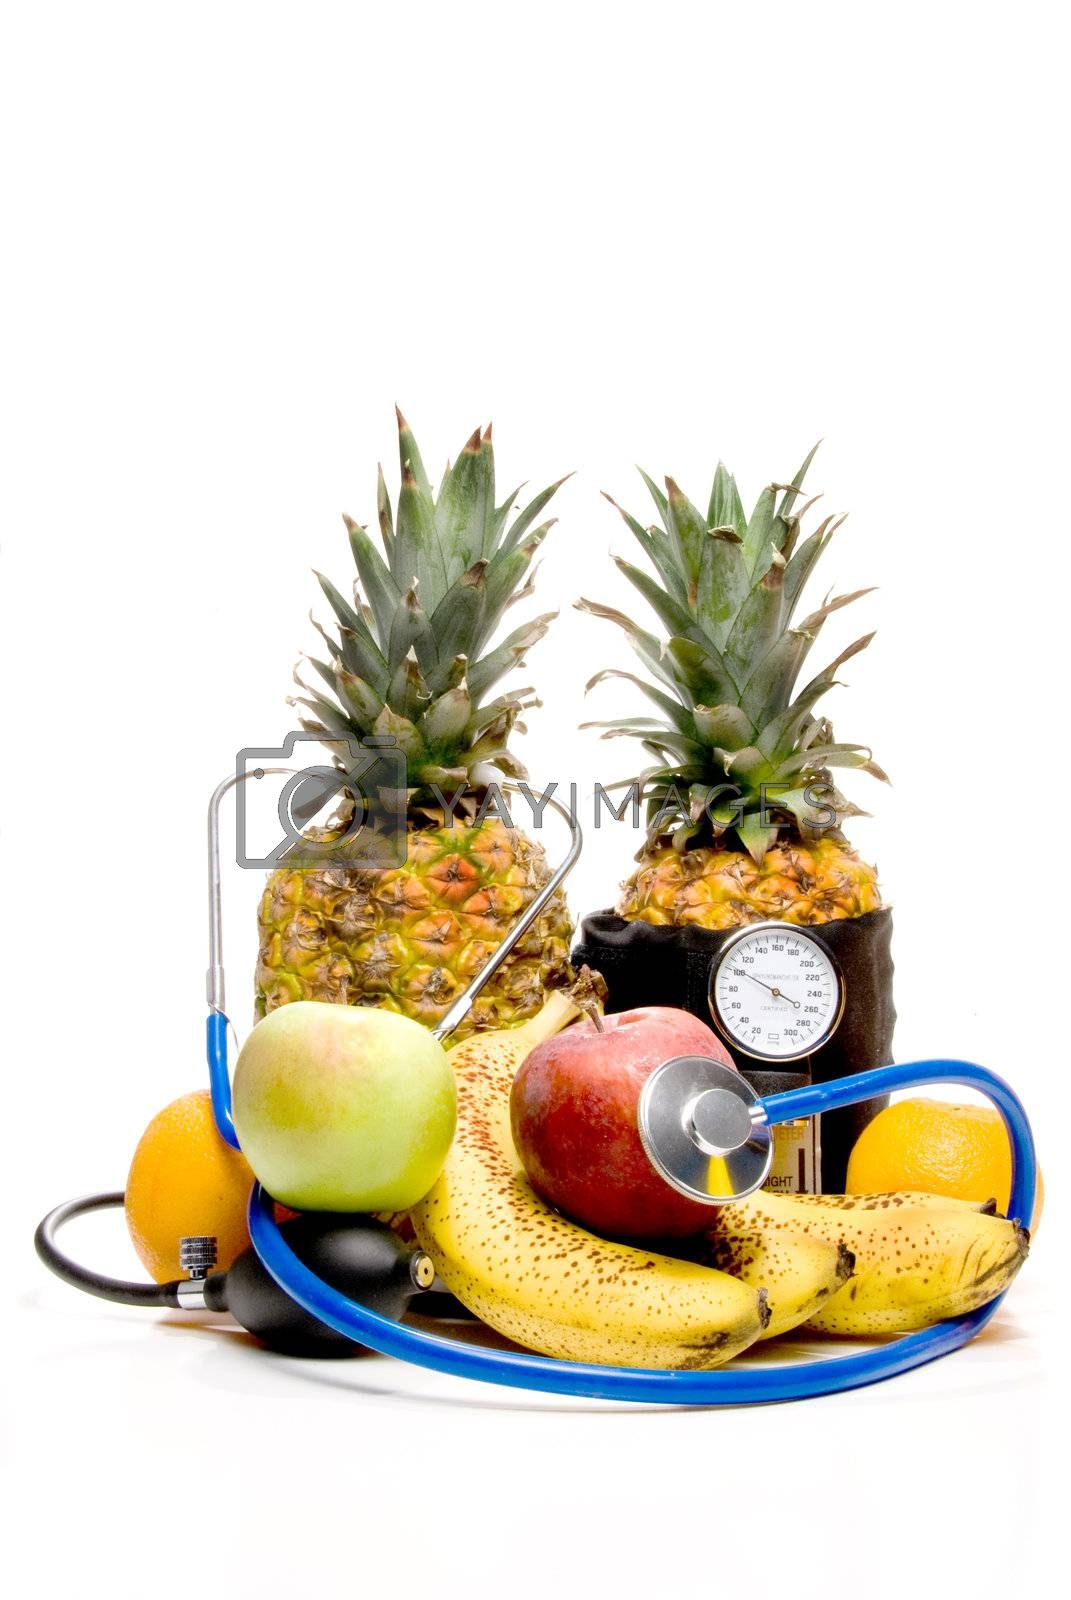 A bunch of healthy fruit getting a medical examination.